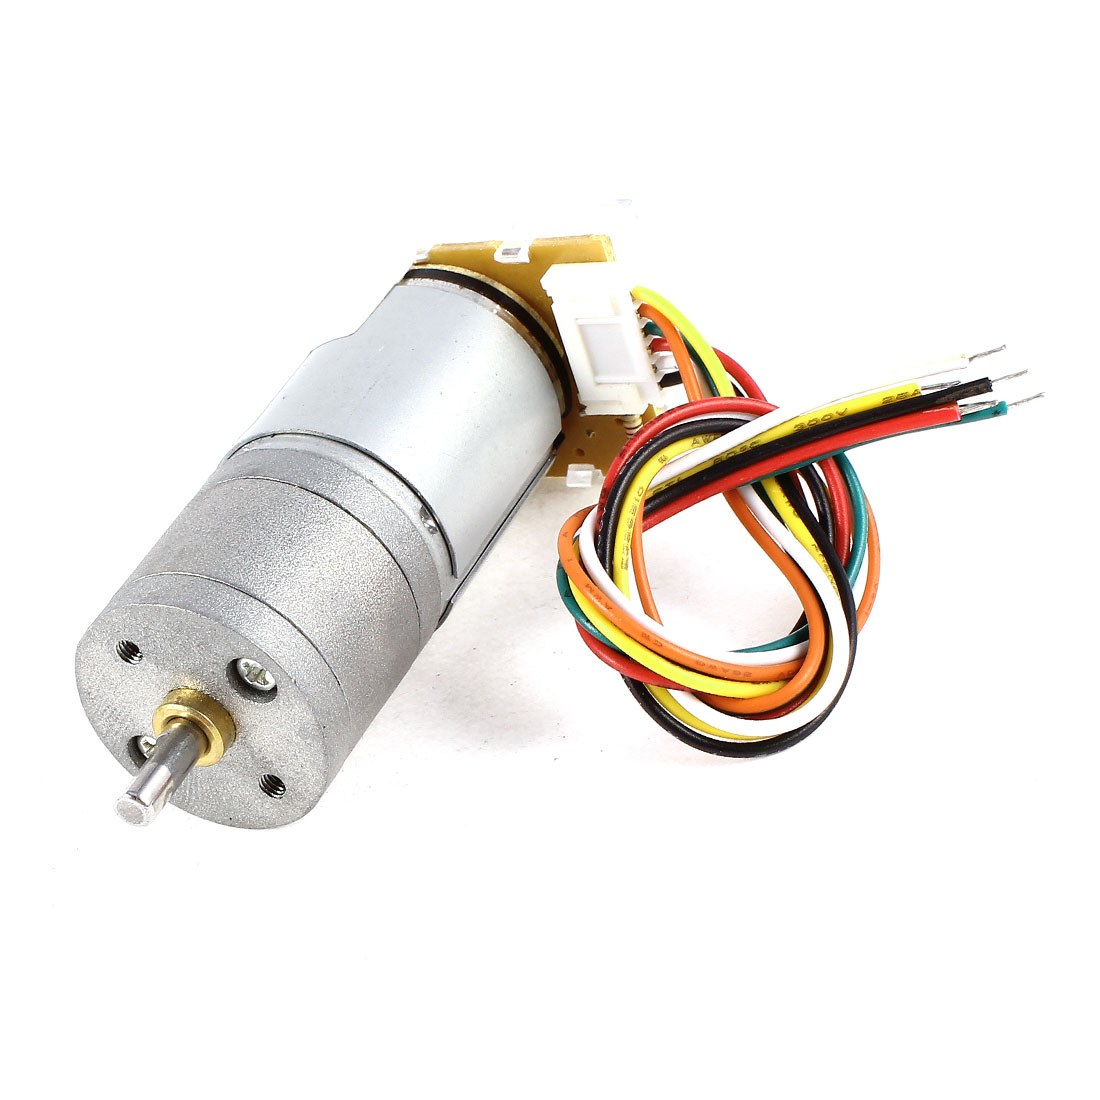 DC 12V 41RPM JGA25-371 Encoder Speed Measuring Disk Reduction Motor Silver Tone